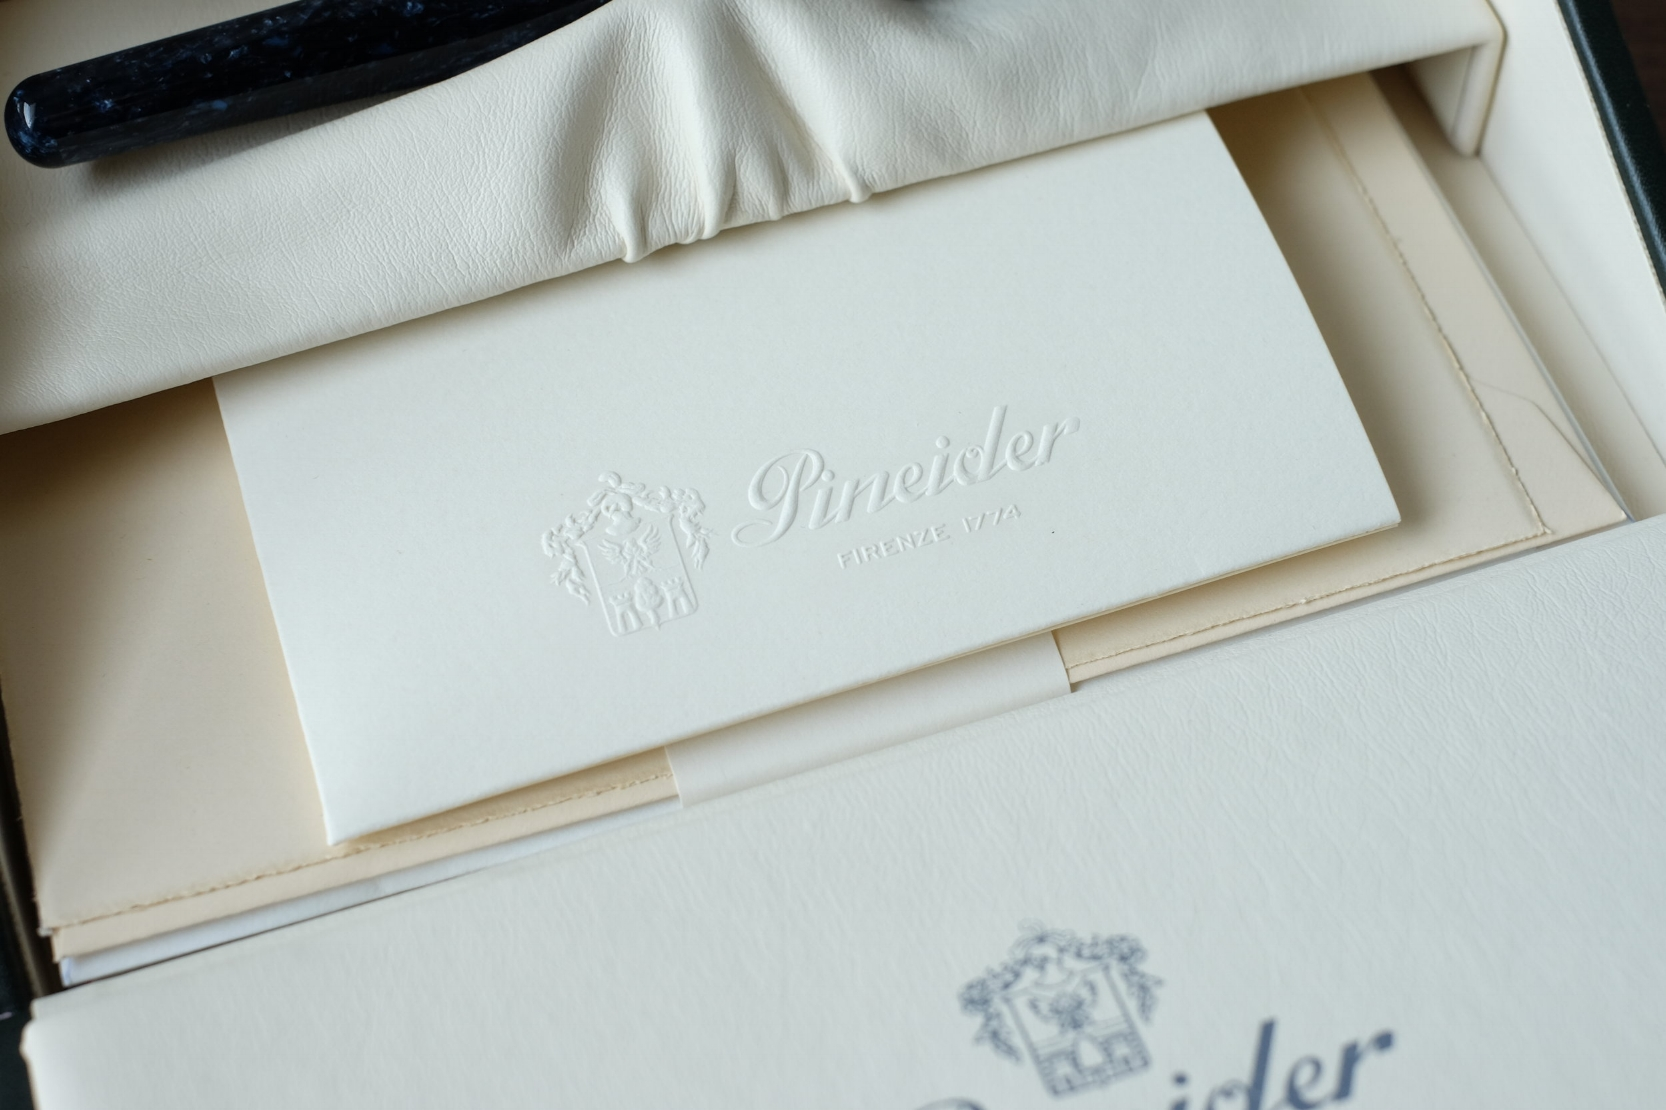 Pineider pens ship in a leatherette box containing a small assortment of Pineider stationery.